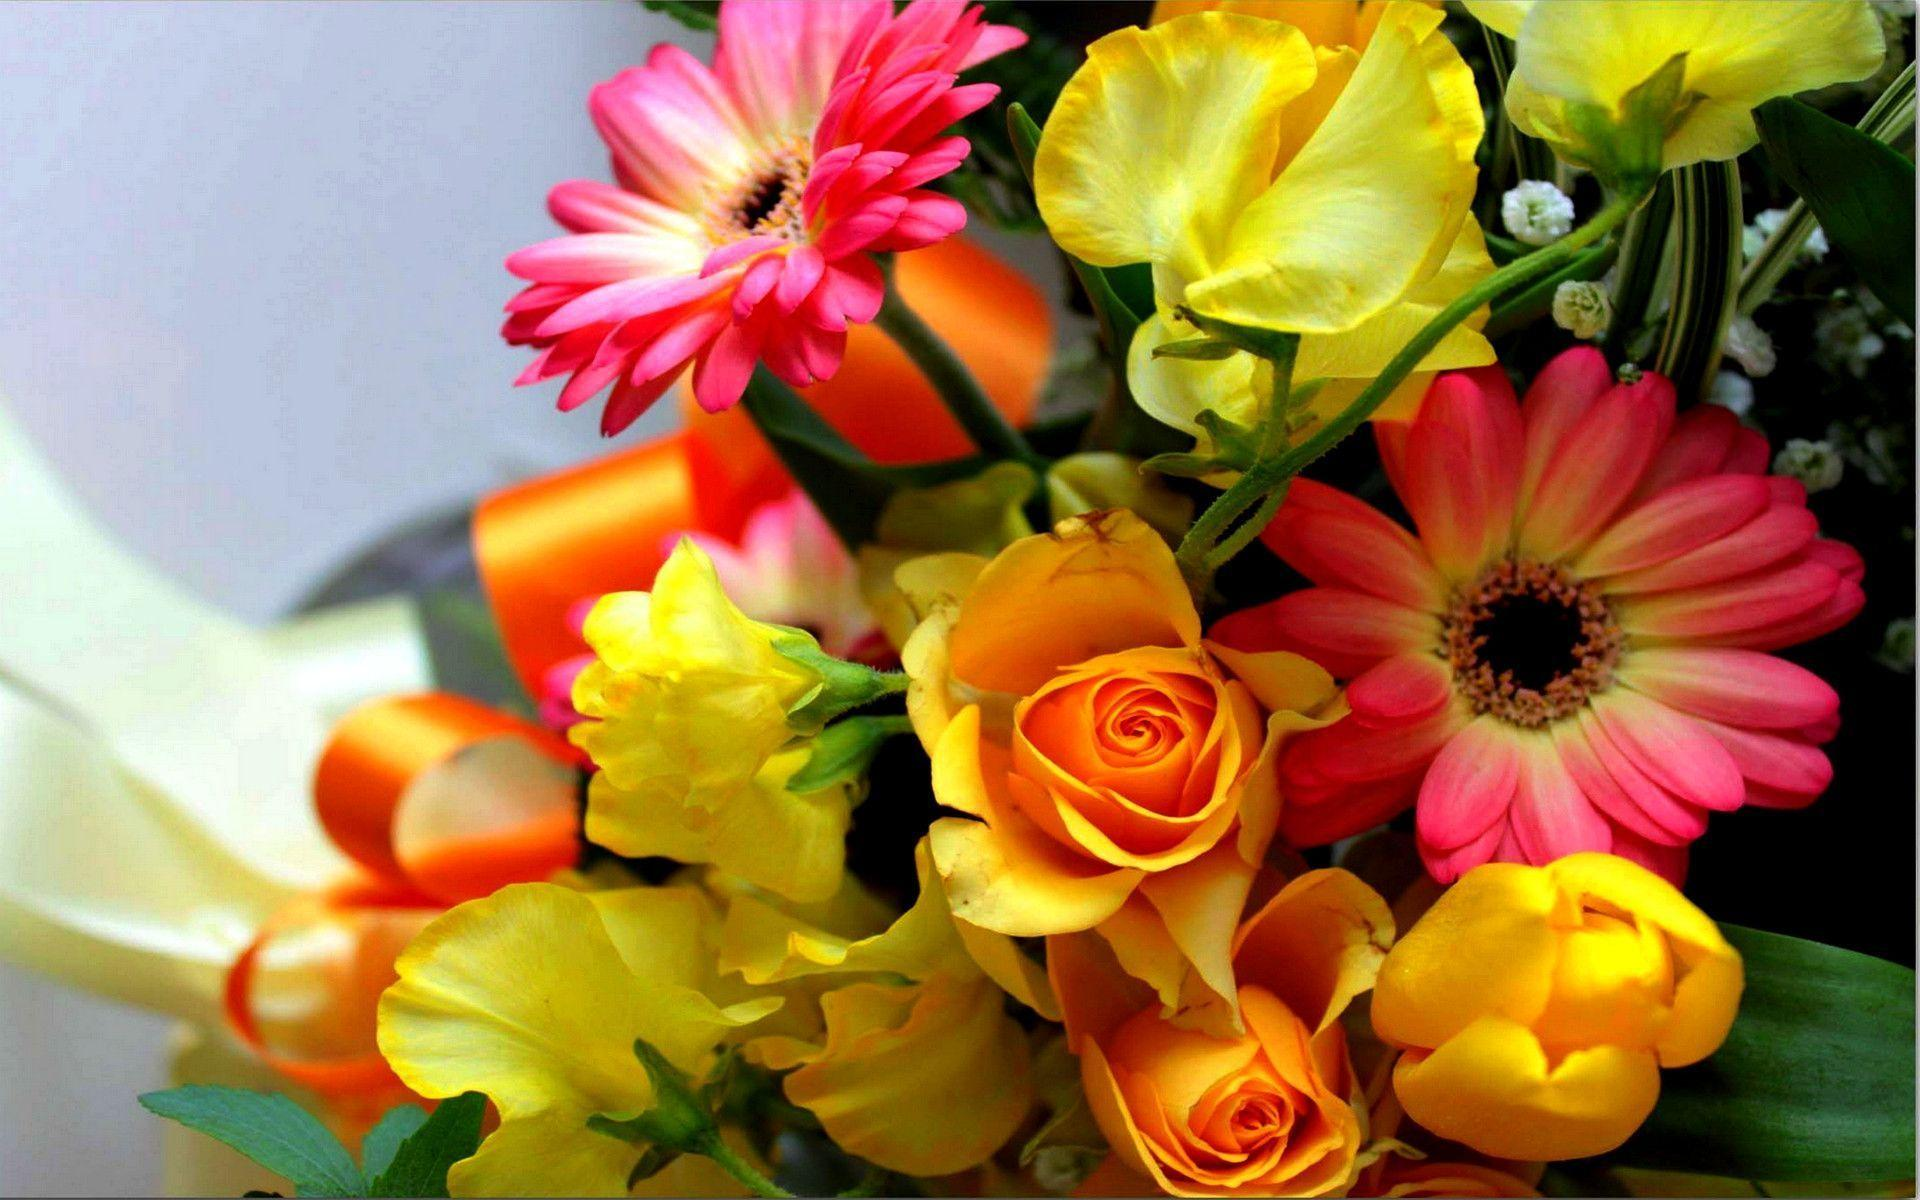 Hd Flower Bouquet Wallpapers Download Fr 1920x1200PX ~ Wallpapers